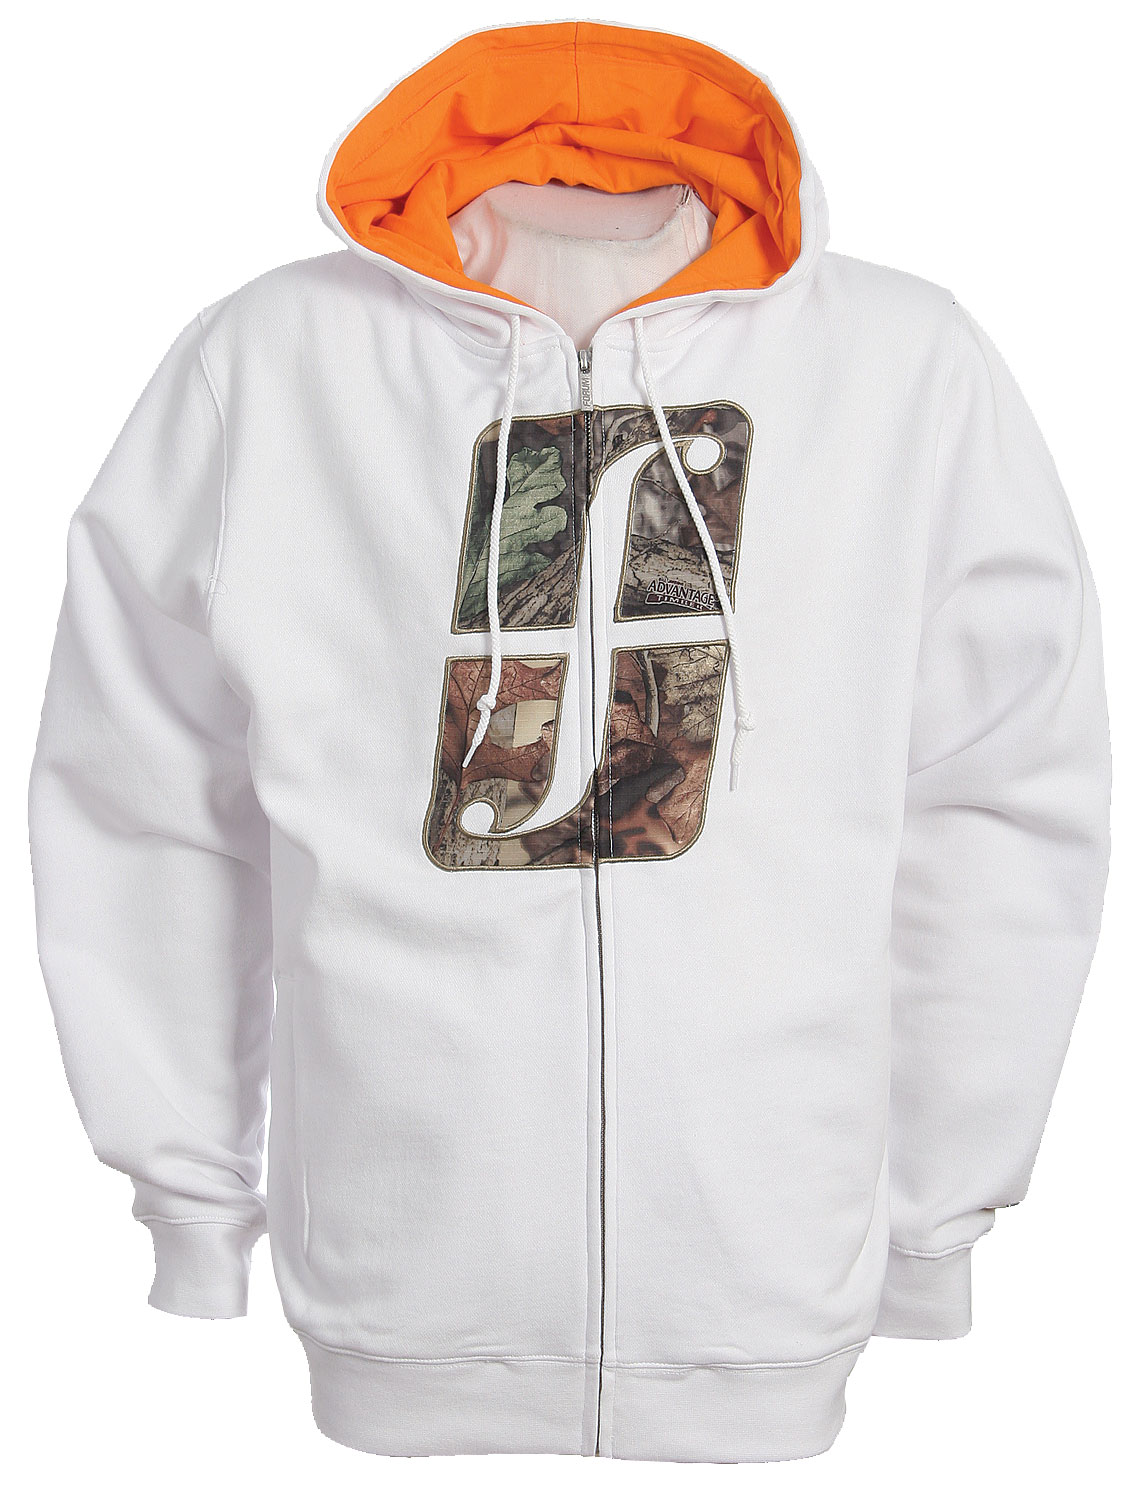 Listen up! Forum has unleashed the Woodland Icon Zip Hoodie. It is perfect for those sunny days on the slopes. It's 80% cotton and 20% polyester, so it will definitely keep you comfortable when you are trying to get air. Its Camo Forum icon on the chest brings mad style to the full zip. Forget your gloves? No worries the Woodland Icon Zip Hoodie comes equip with hand warmer pockets to keep your fingers cozy.Key Features of The Forum Woodland Icon Full Zip Hoodie:80% Cotton 20% Polyester Woodland Camo Applique Hand warmer pockets - $20.95